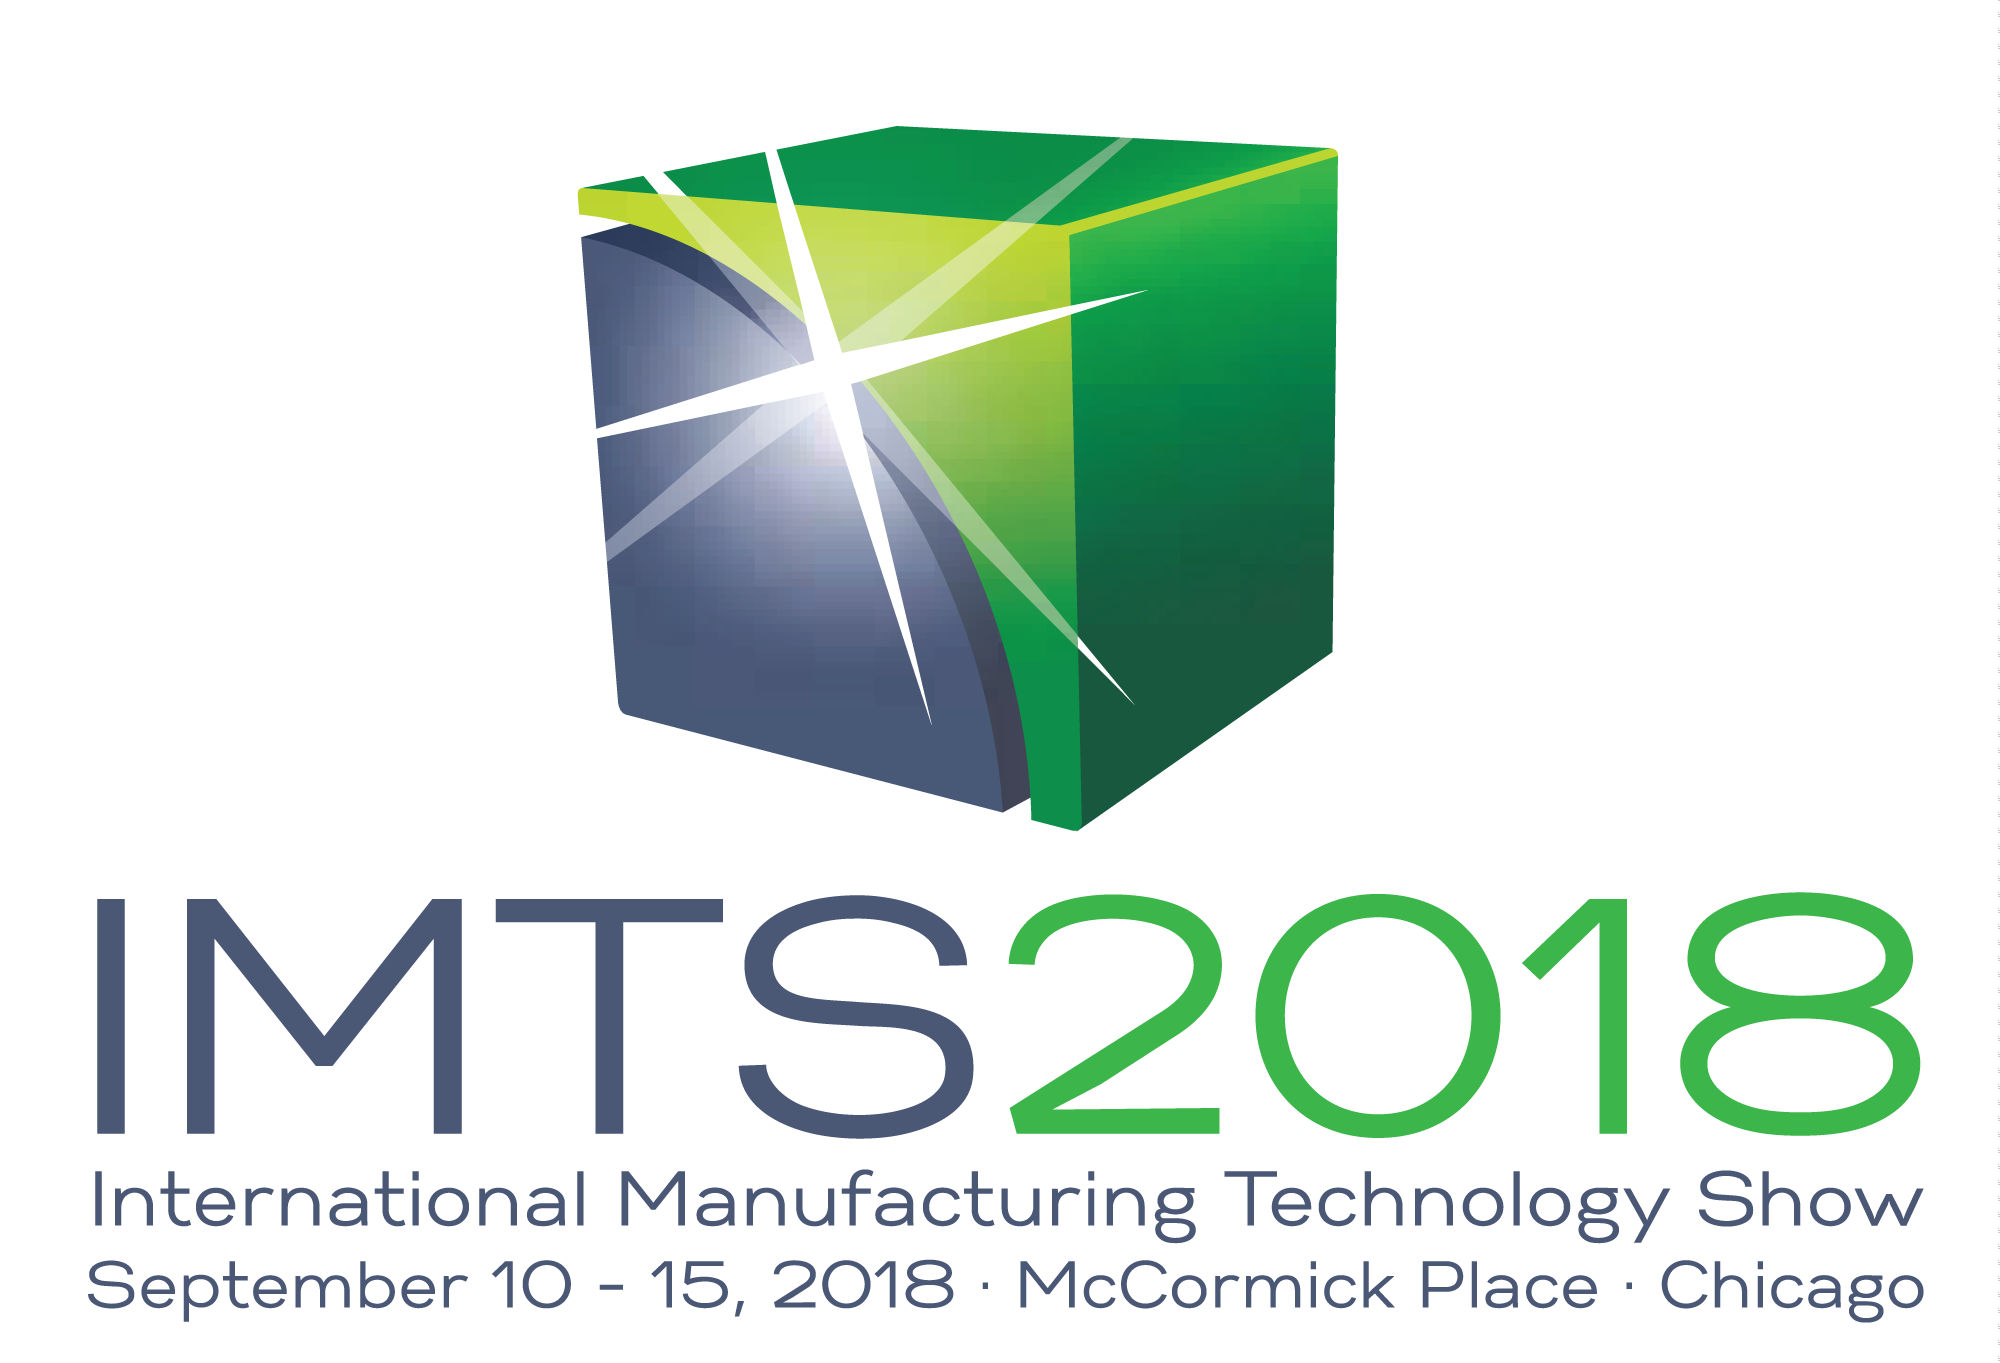 U.S. Nameplate Co. exhibits at IMTS